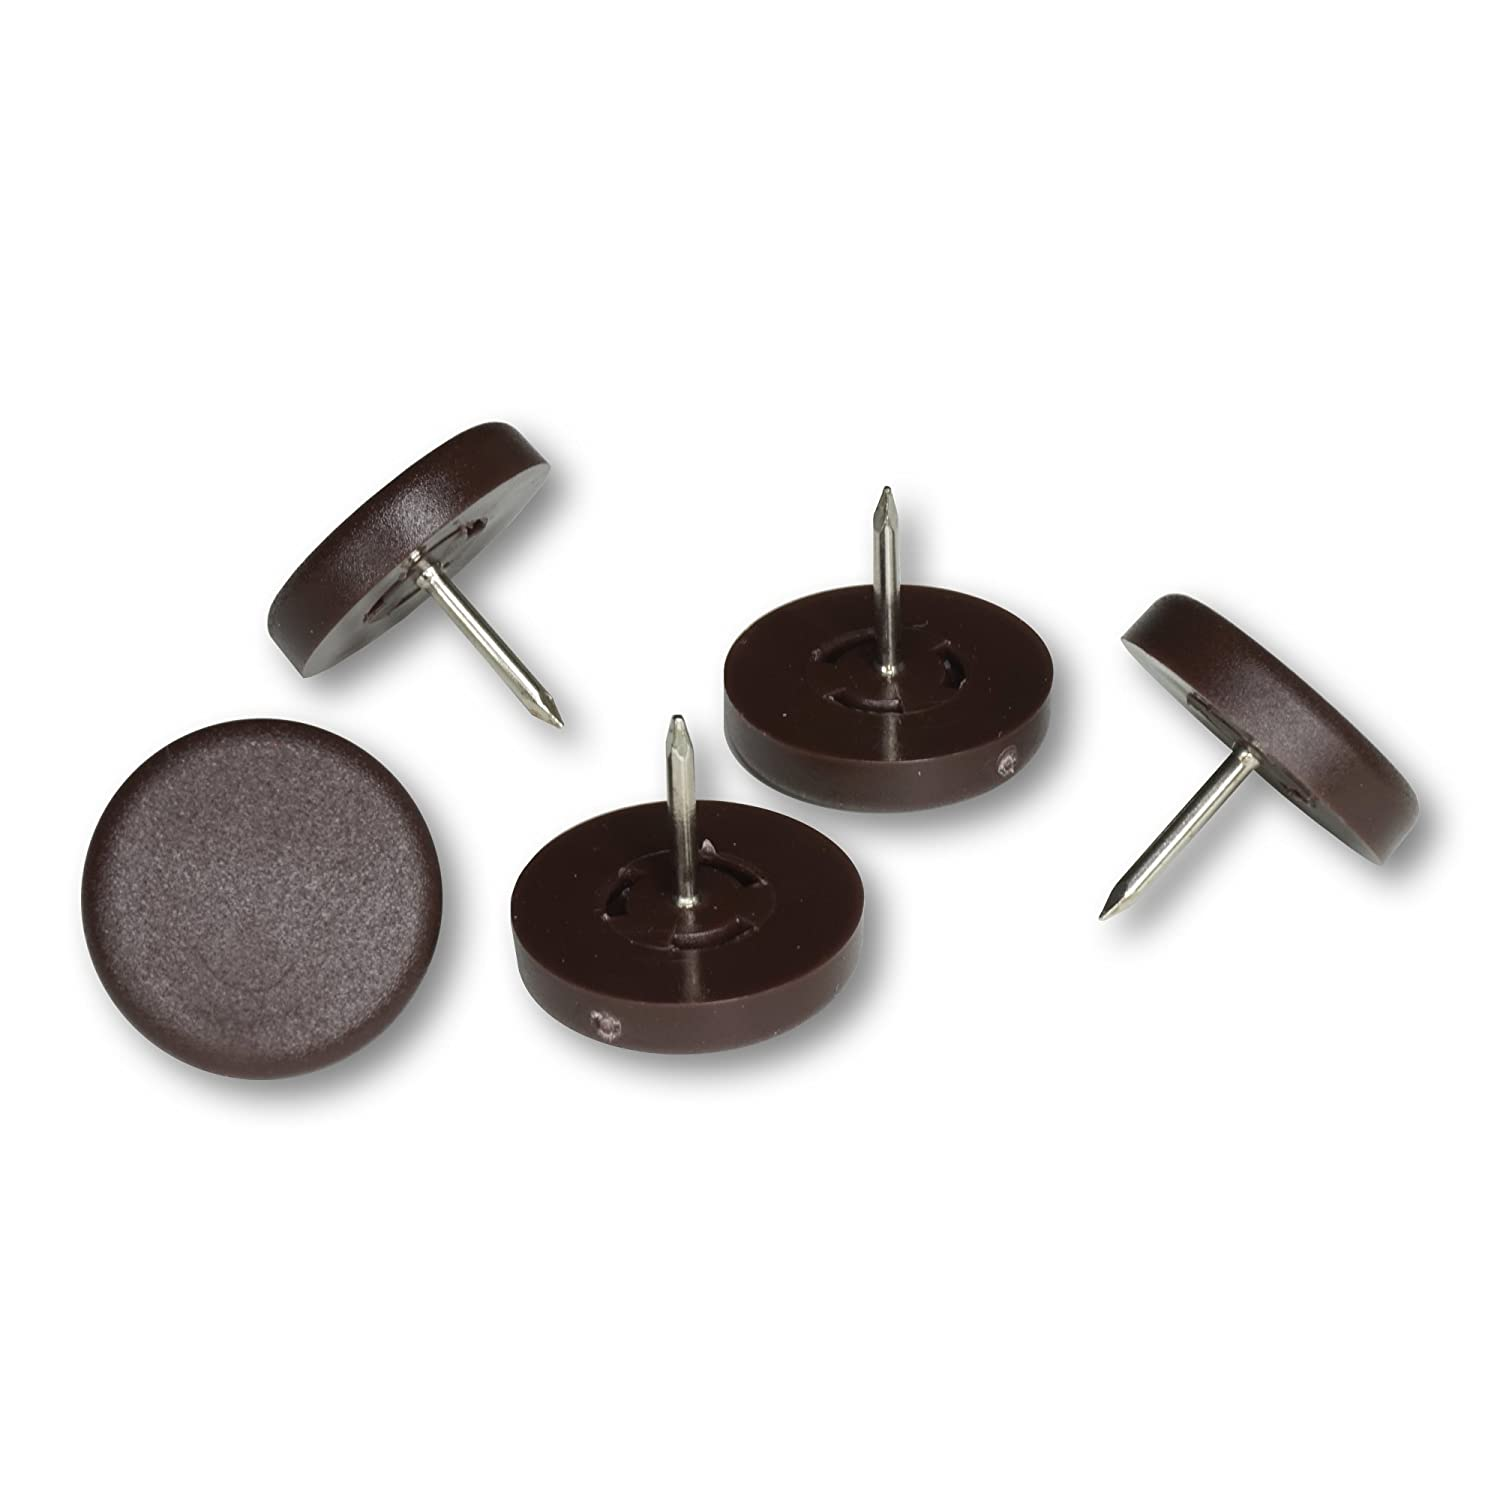 Plastic Furniture Pads with Nail, brown, 15 mm dia, 5 mm thick - 12 Pieces, as floor protector for case legs, table legs, chair legs - Made in Germany K.D.J. Brand GmbH & Co. KG